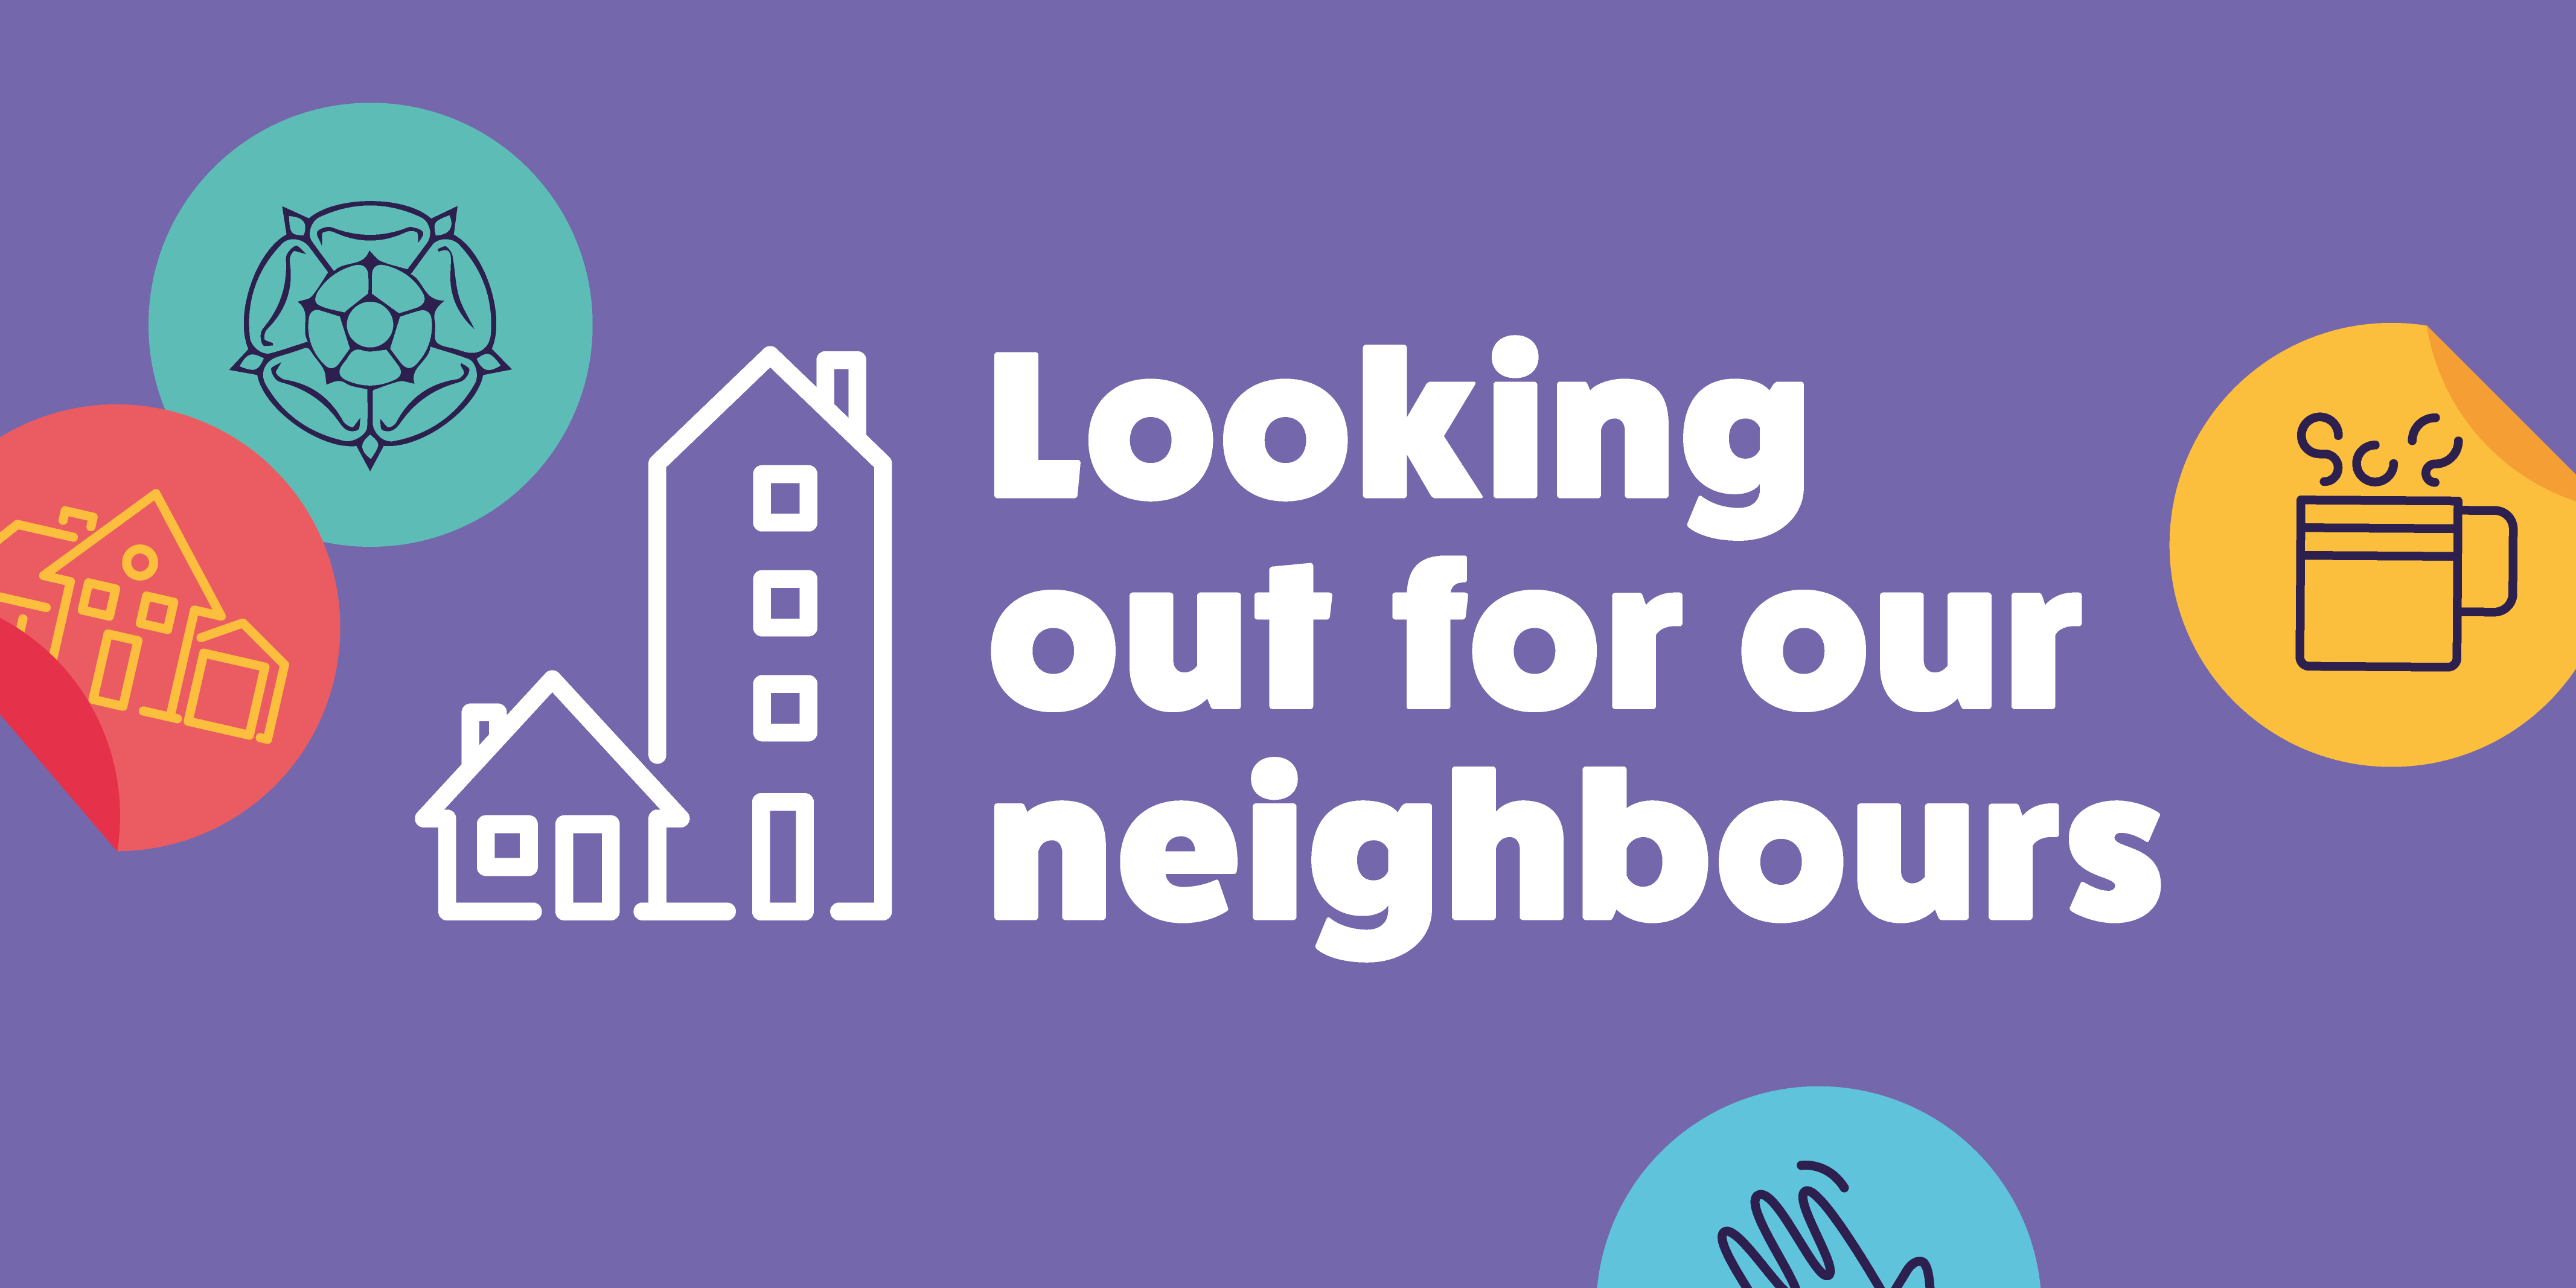 We're Proud to be 'Looking out for our Neighbours'